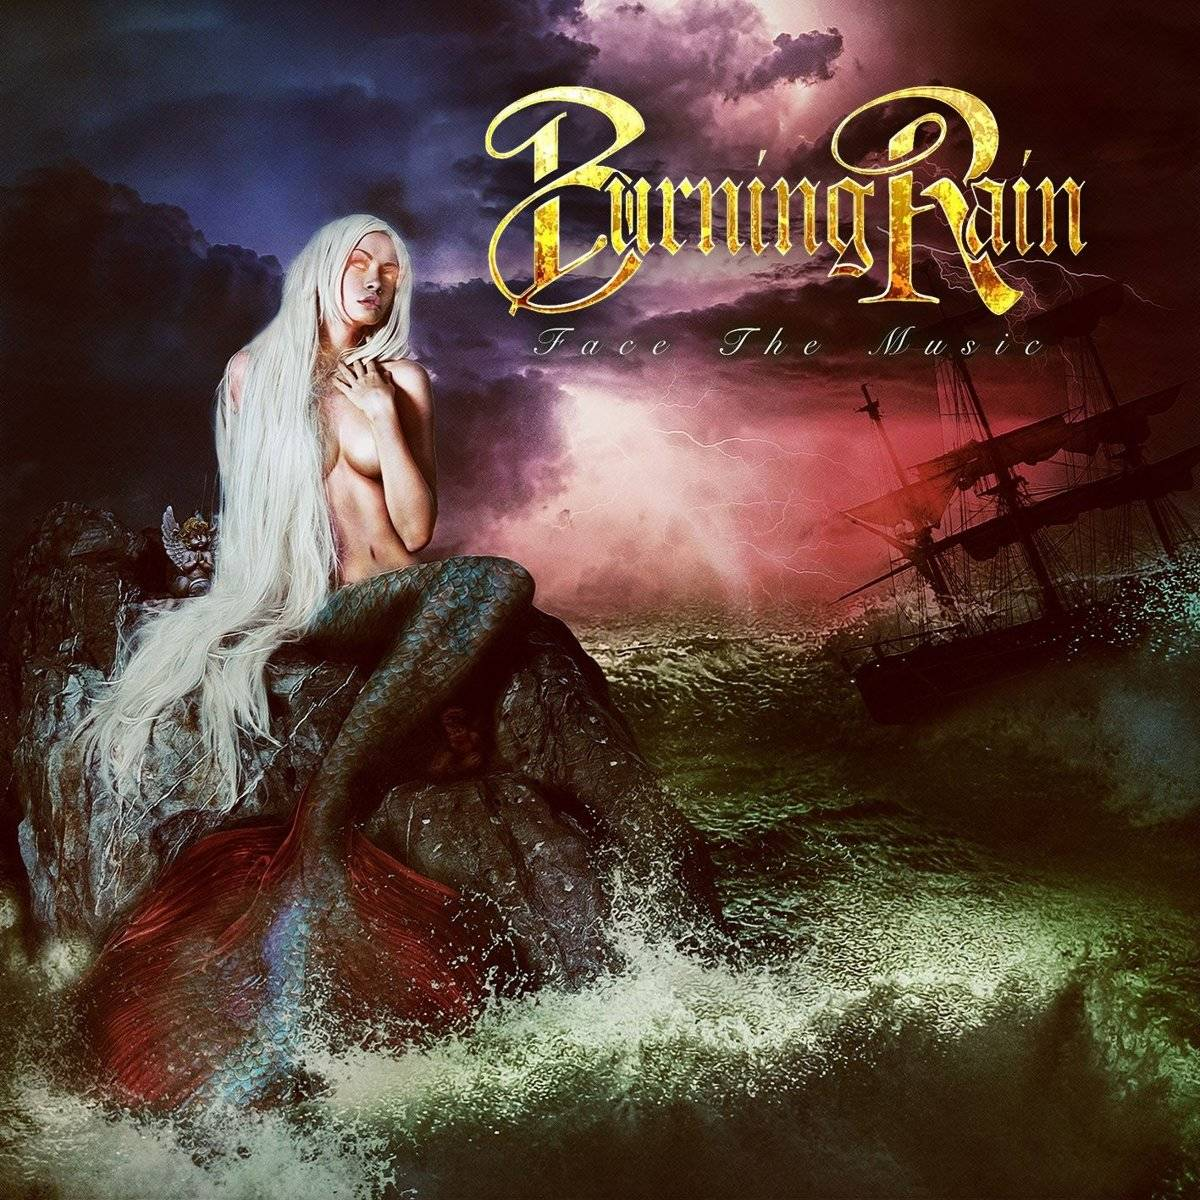 BURNING RAIN『Face The Music』